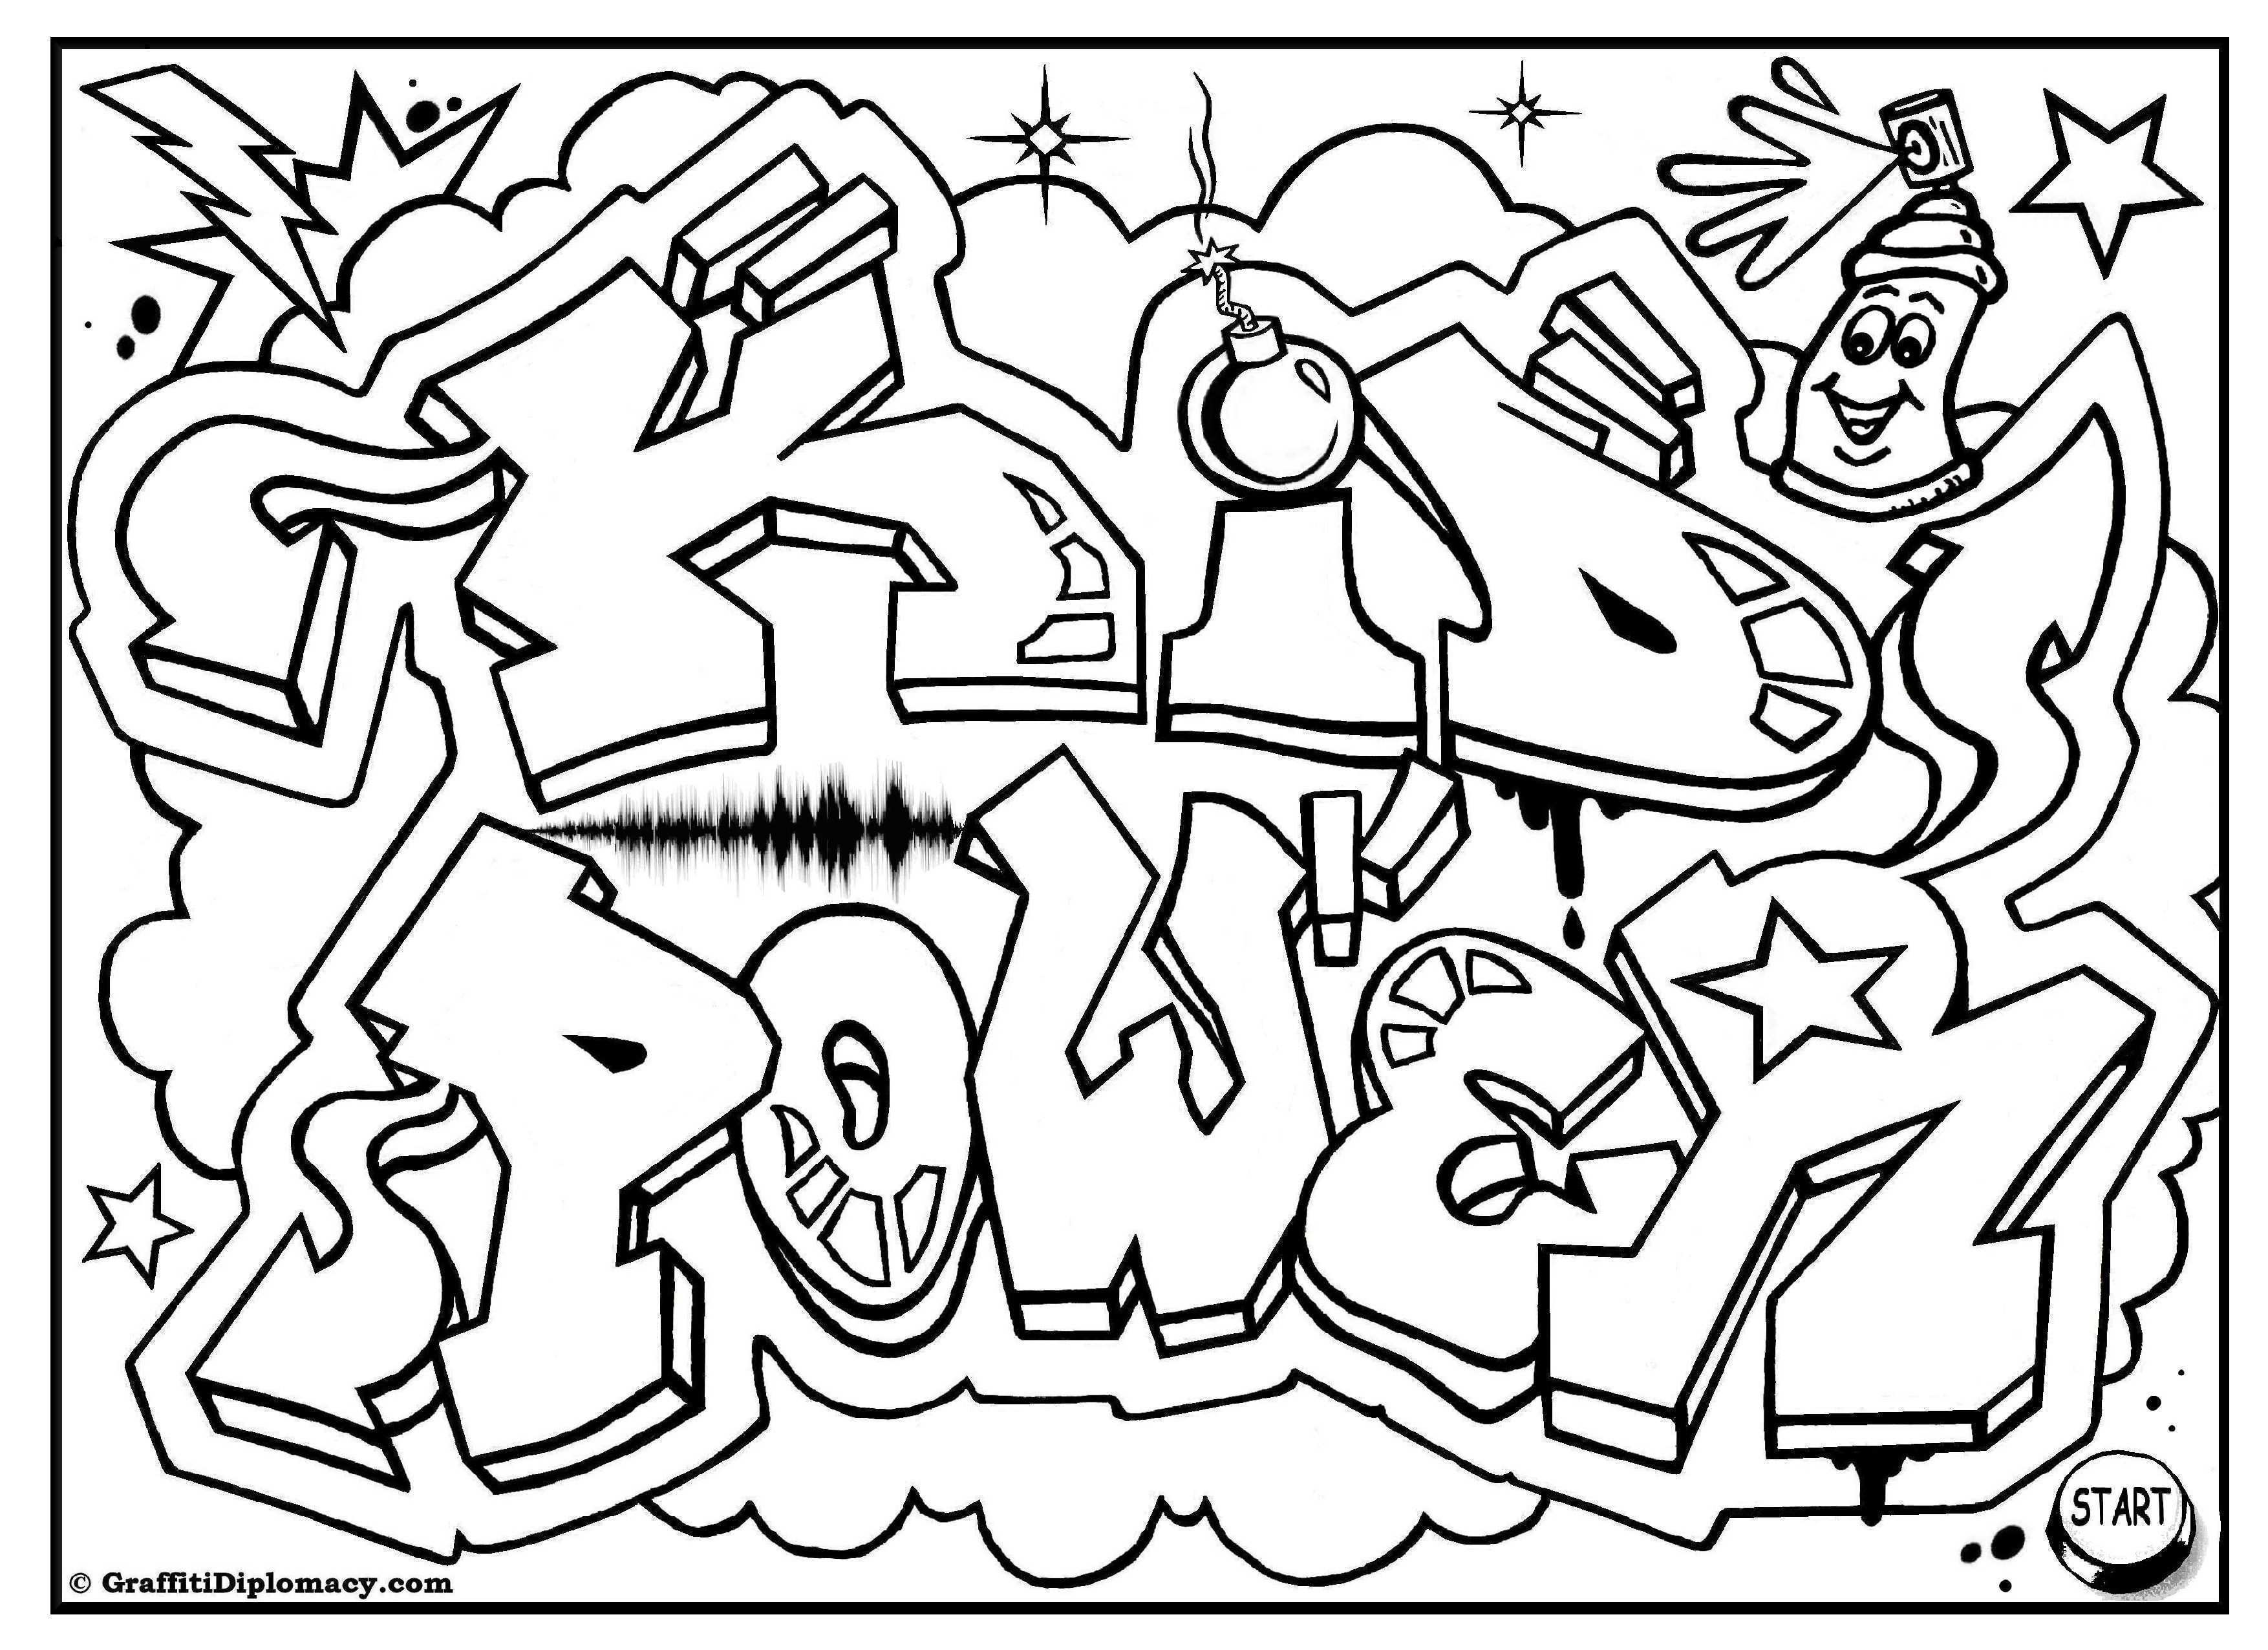 Coloring Book Templates Fine Coloring Free Printable Coloring Pages